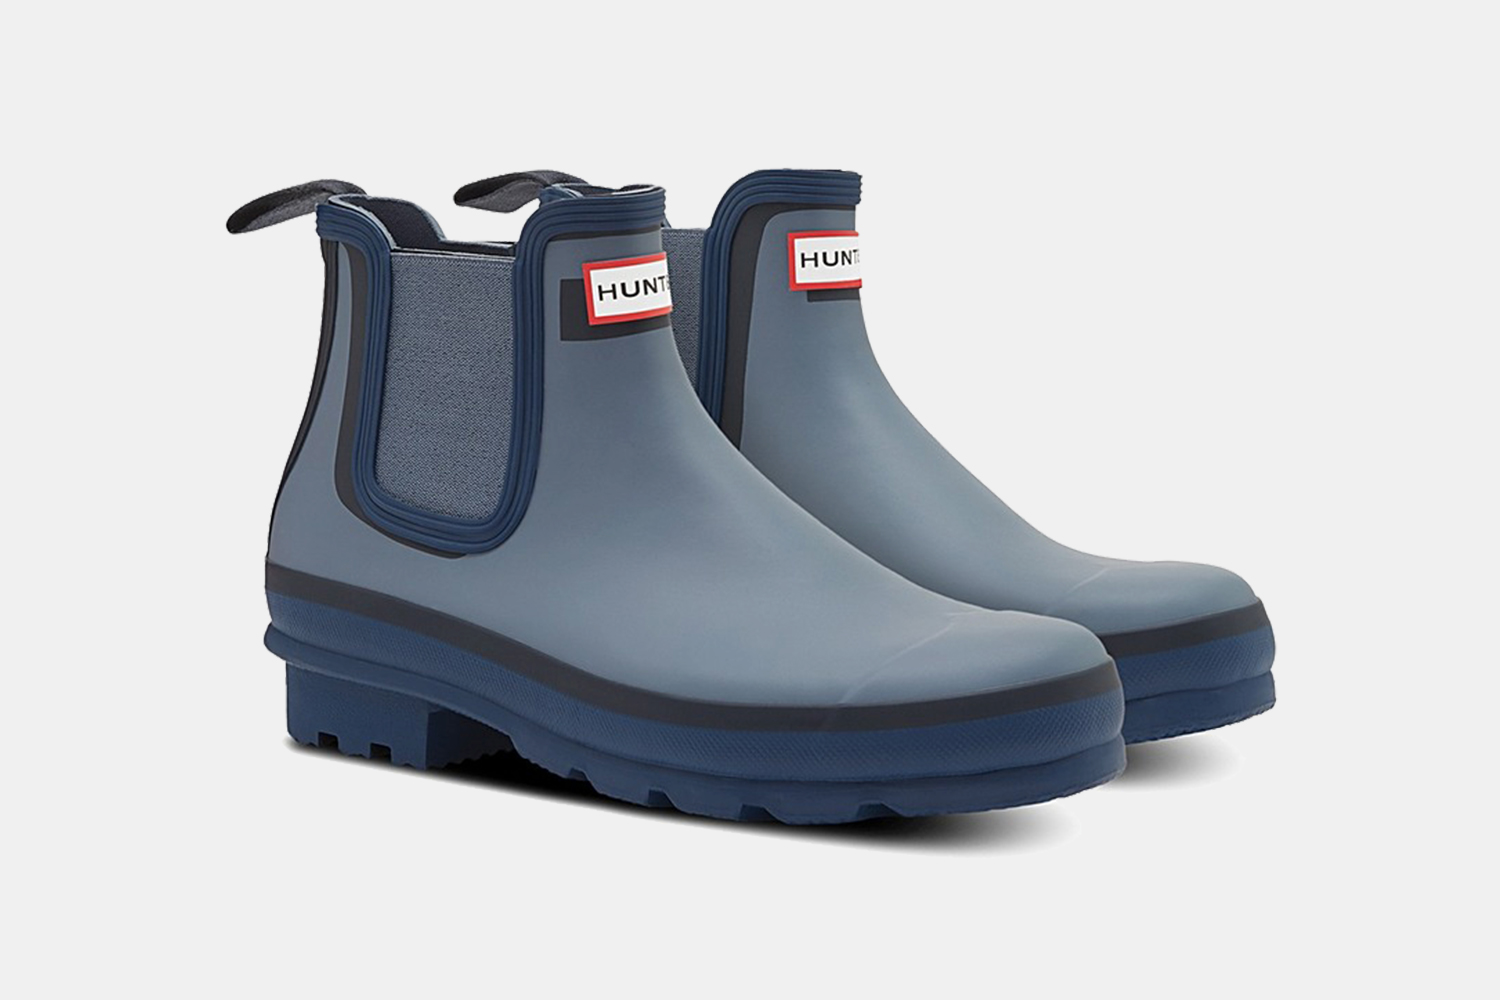 Hunter Chelsea Waterproof Rain Boots in Blue and Grey Discount